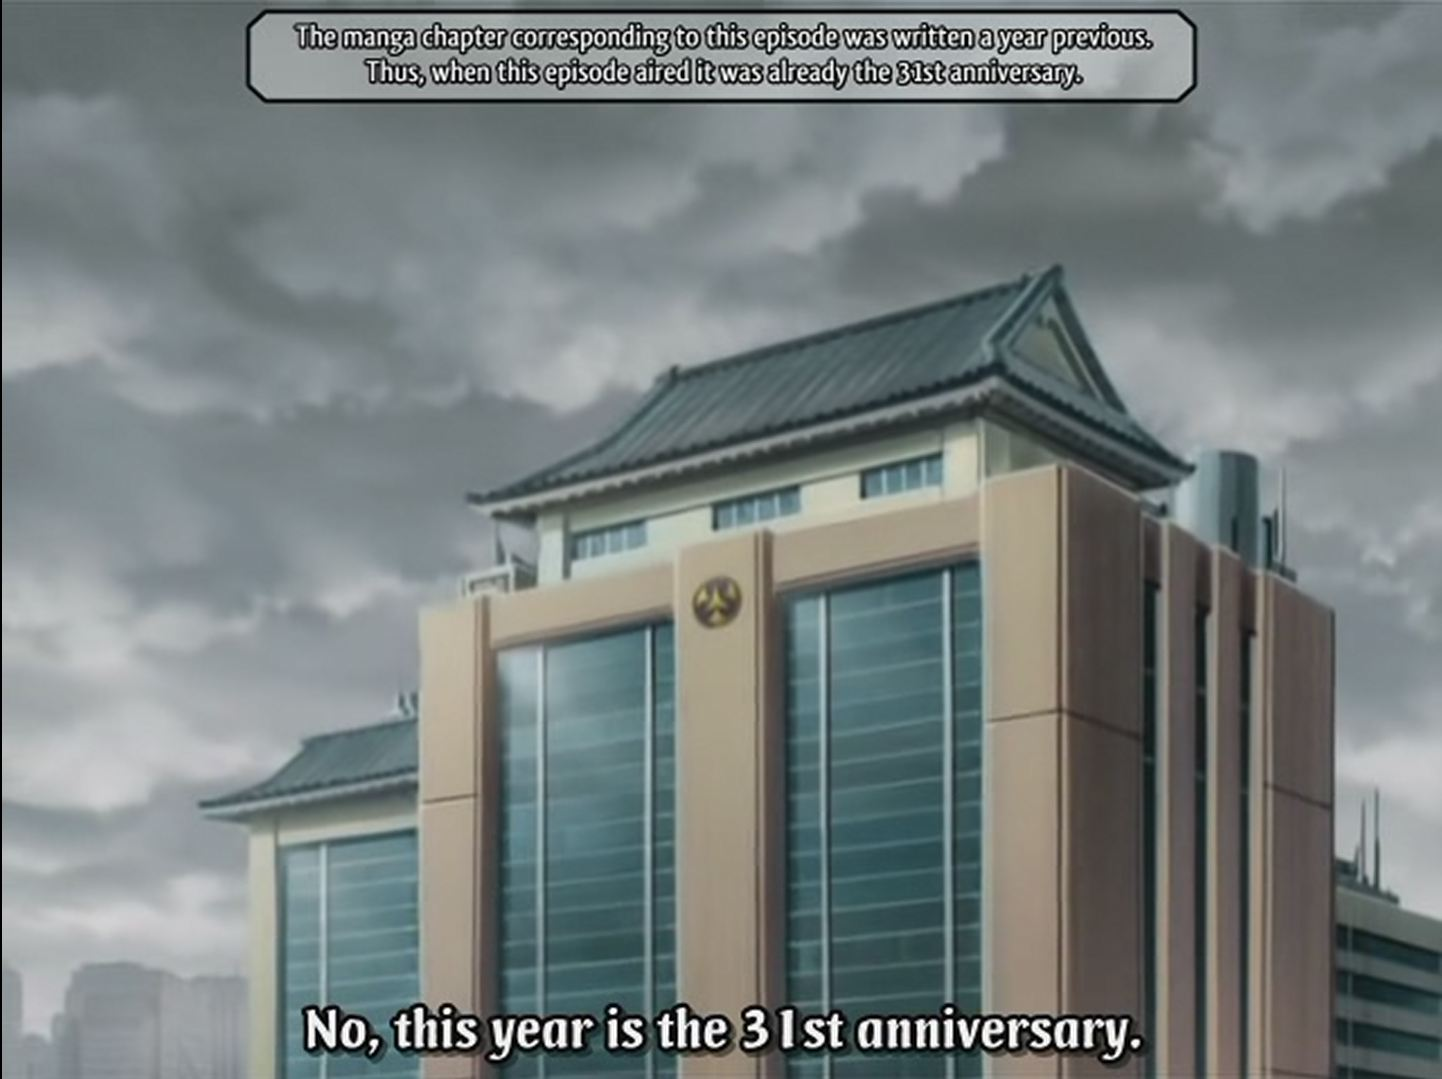 Screen cap of exterior of building. Supertitle: 'The manga chapter corresponding to this episode was written a year previous. Thus, when this episode aired it was already the 31st anniversary.' Subtitle: 'No, this year is the 31st anniversary.'